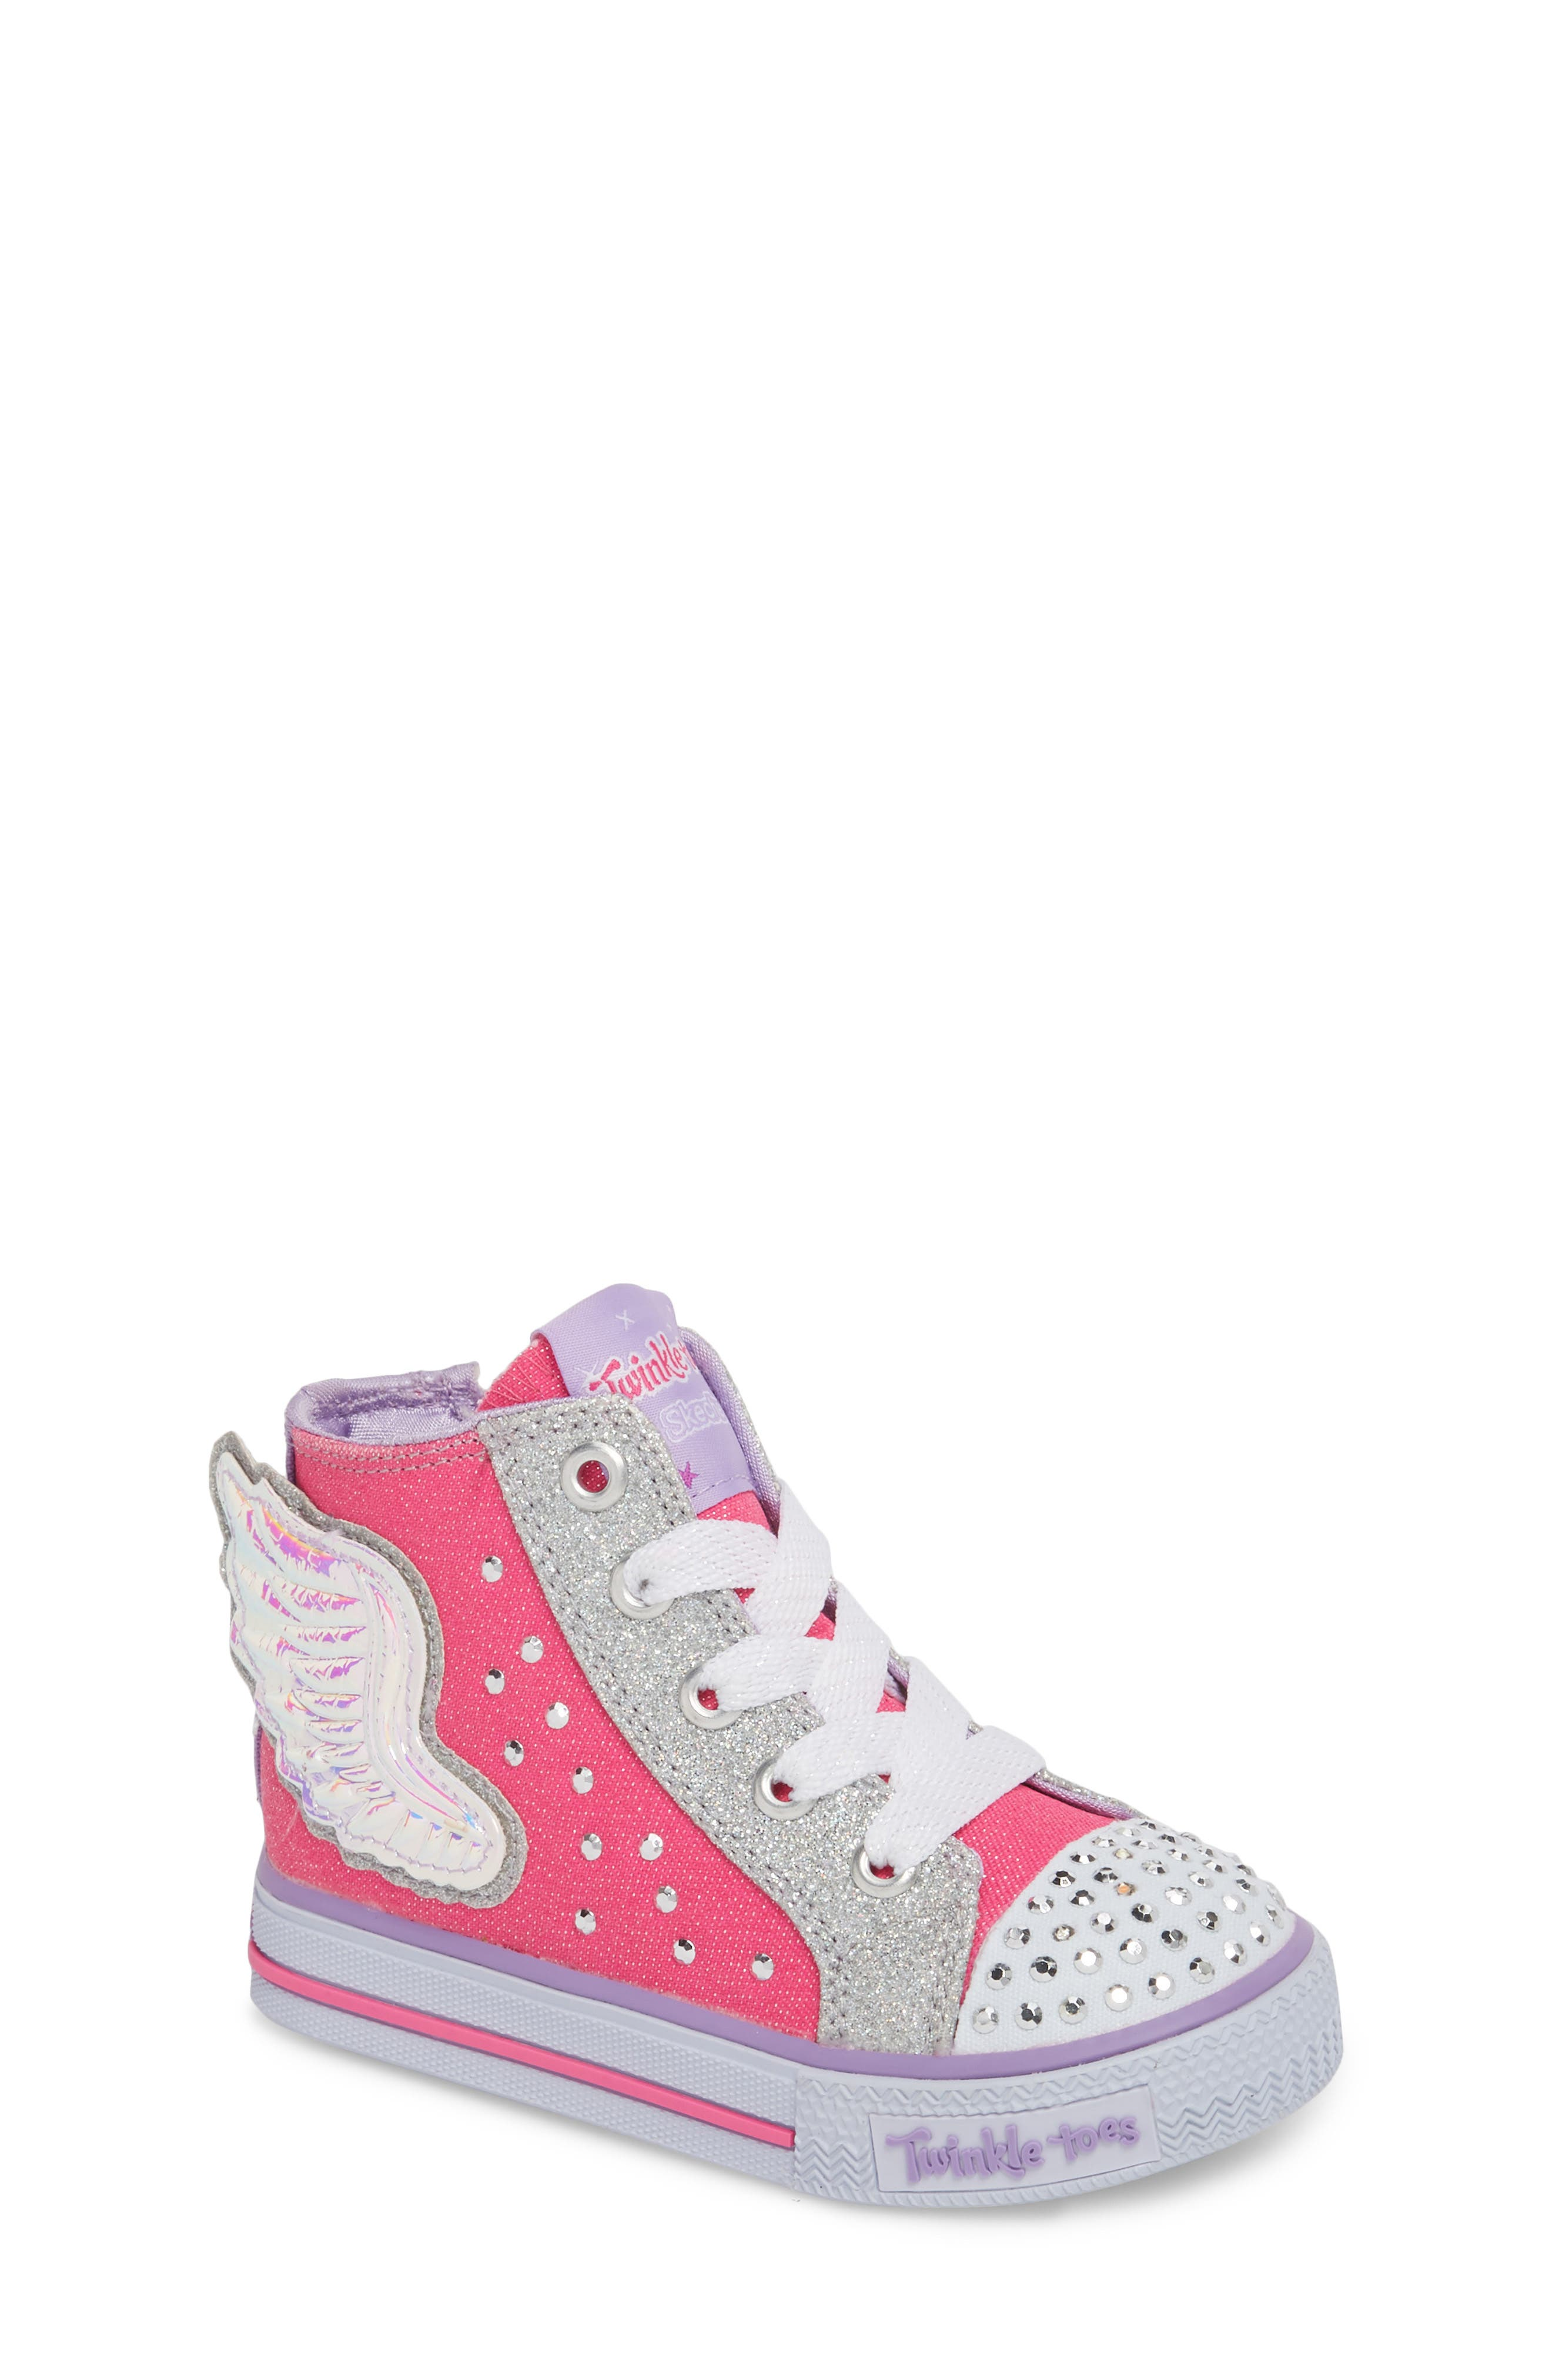 Twinkle Toes Shuffles Fooling Flutters Light-Up High Top Sneaker,                             Main thumbnail 1, color,                             650